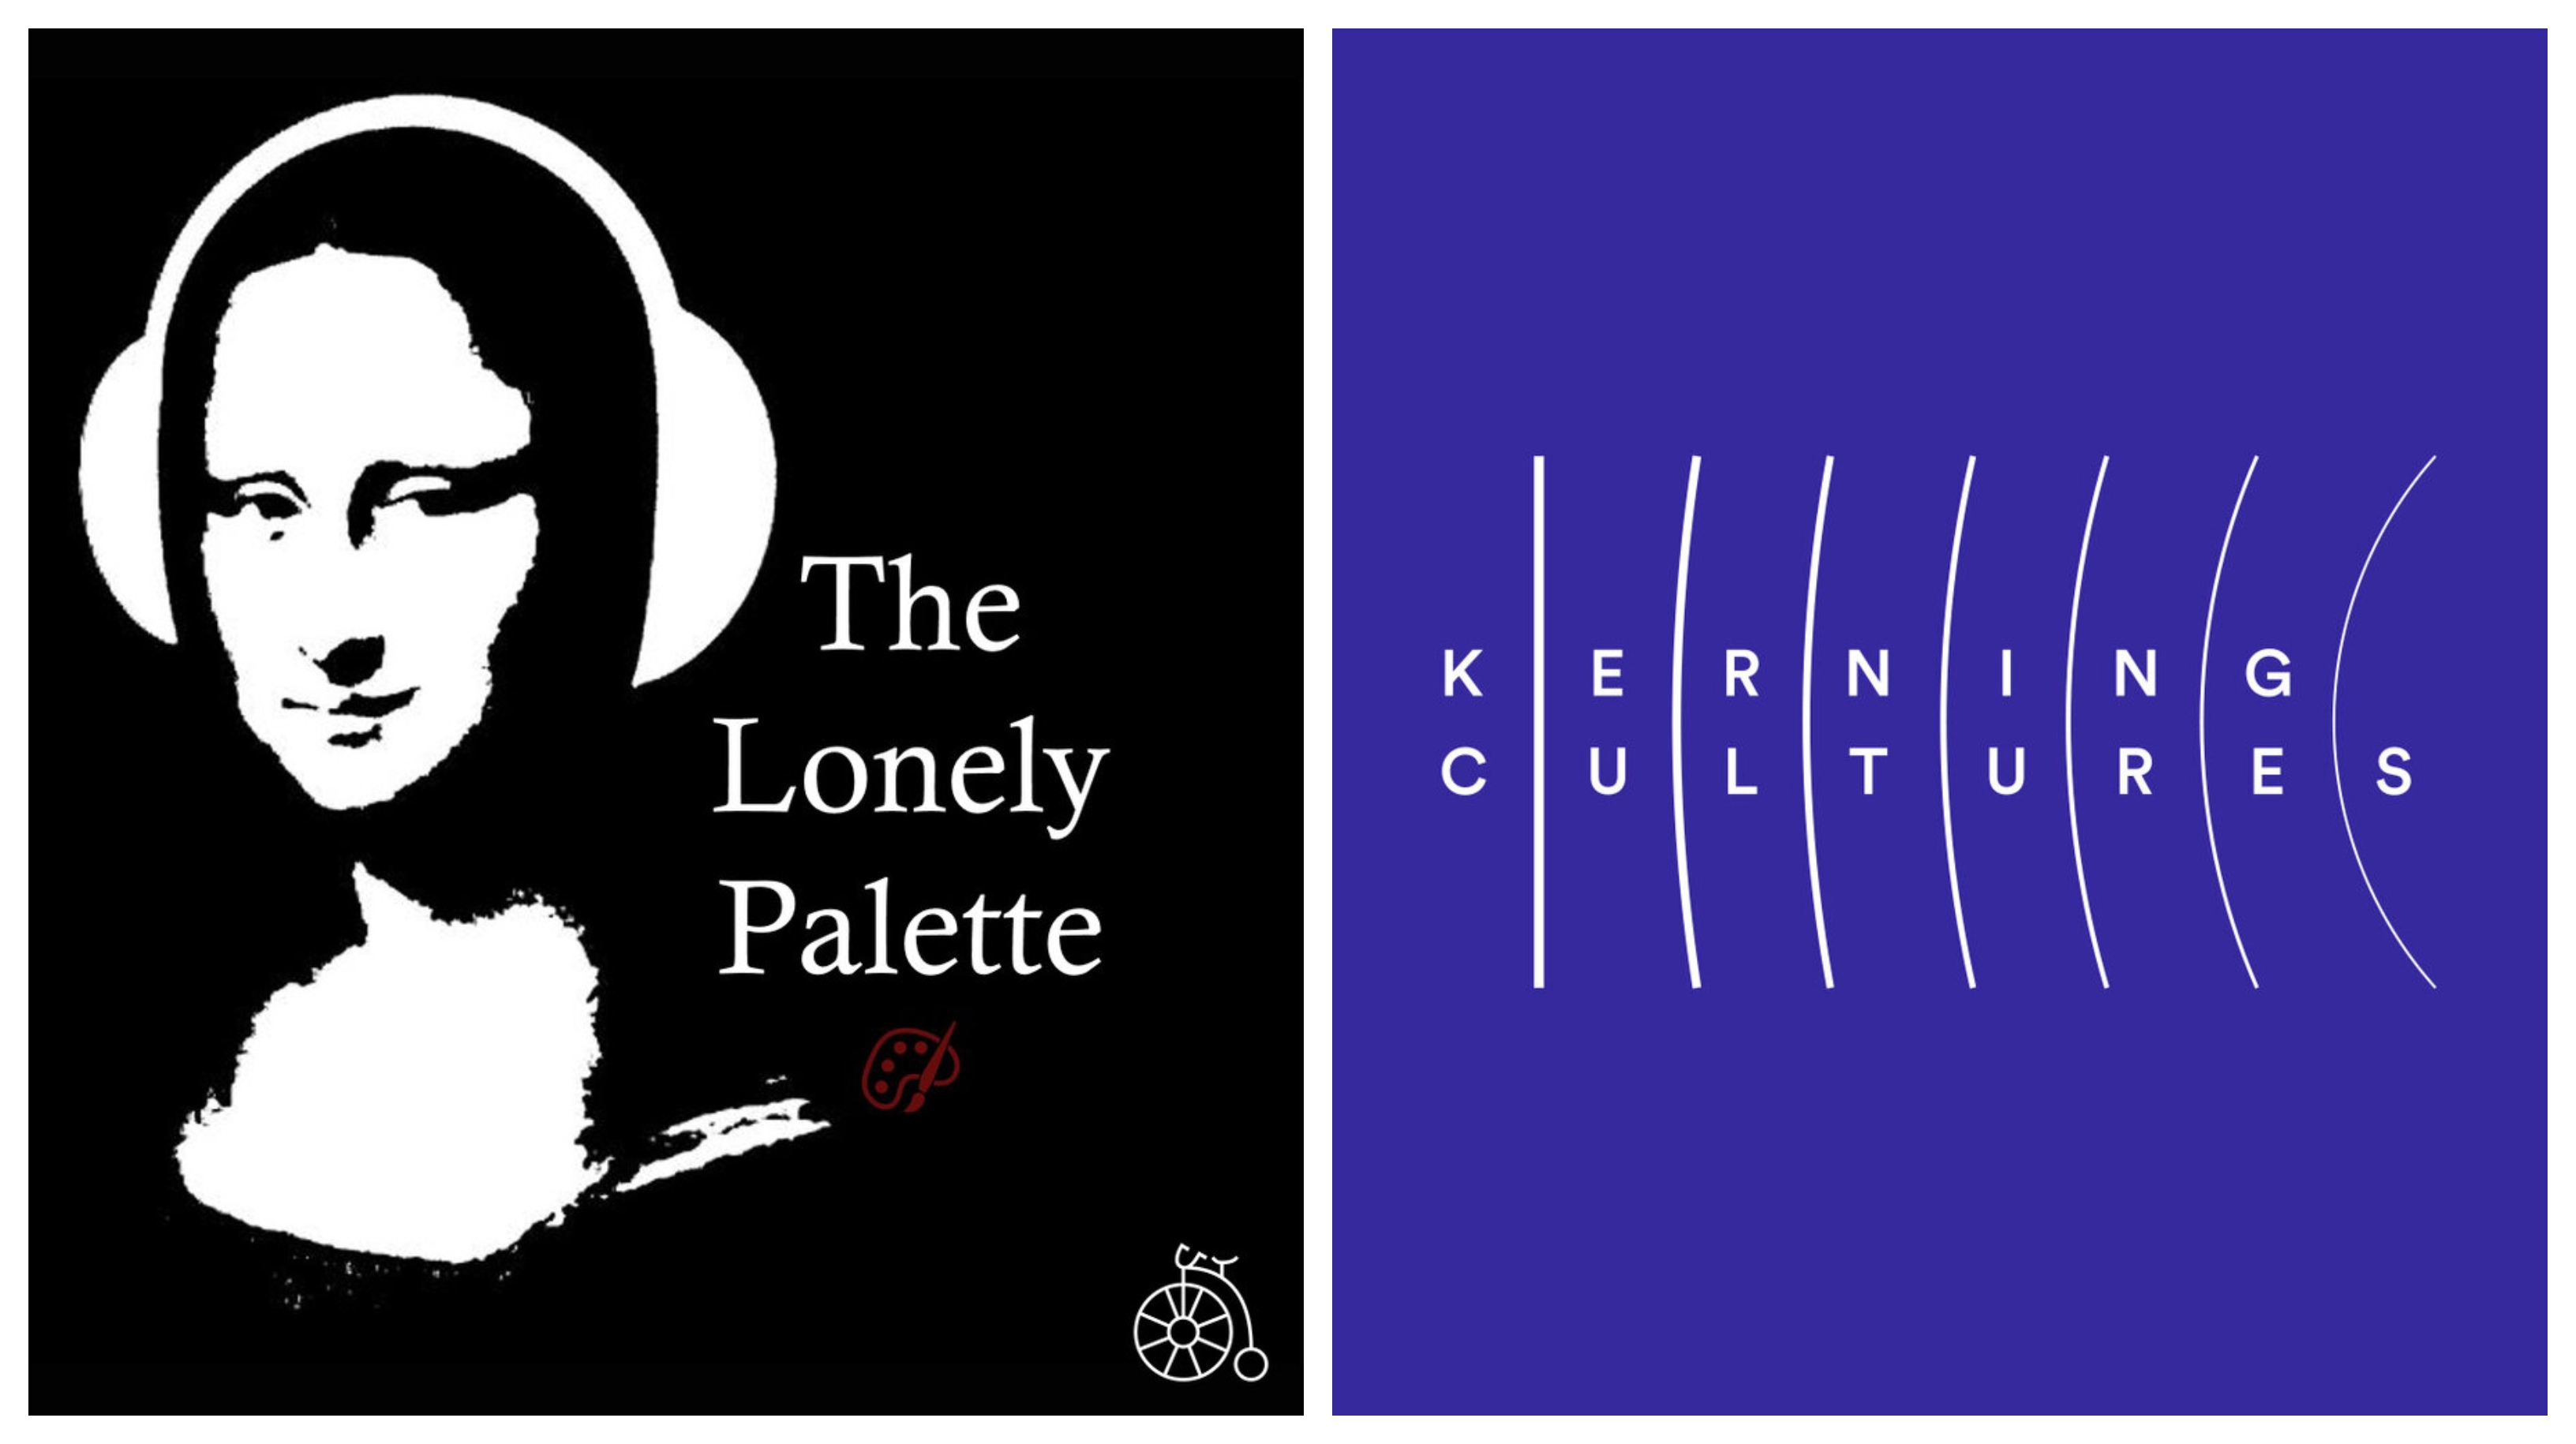 The Lonely Palette - Kerning Cultures